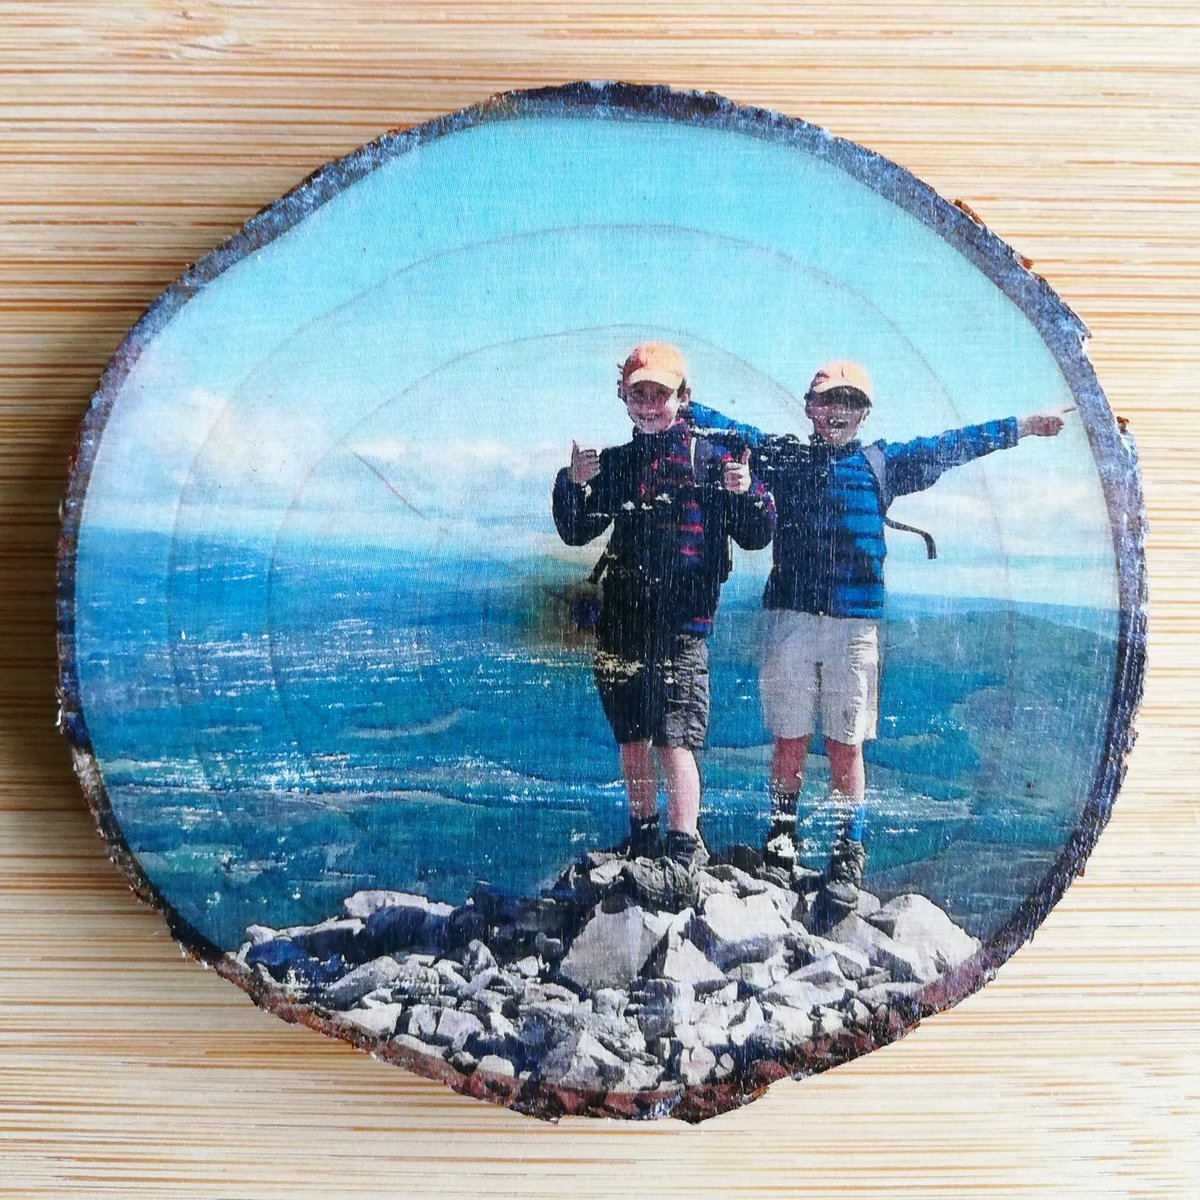 Morning #EarlyBiz, I'm a new biz turning happy memories into special wood art. Love this one of brothers celebrating on the summit of Schiehallion. First Munro bagged. #lovescotland pic.twitter.com/rmHVX90u3g